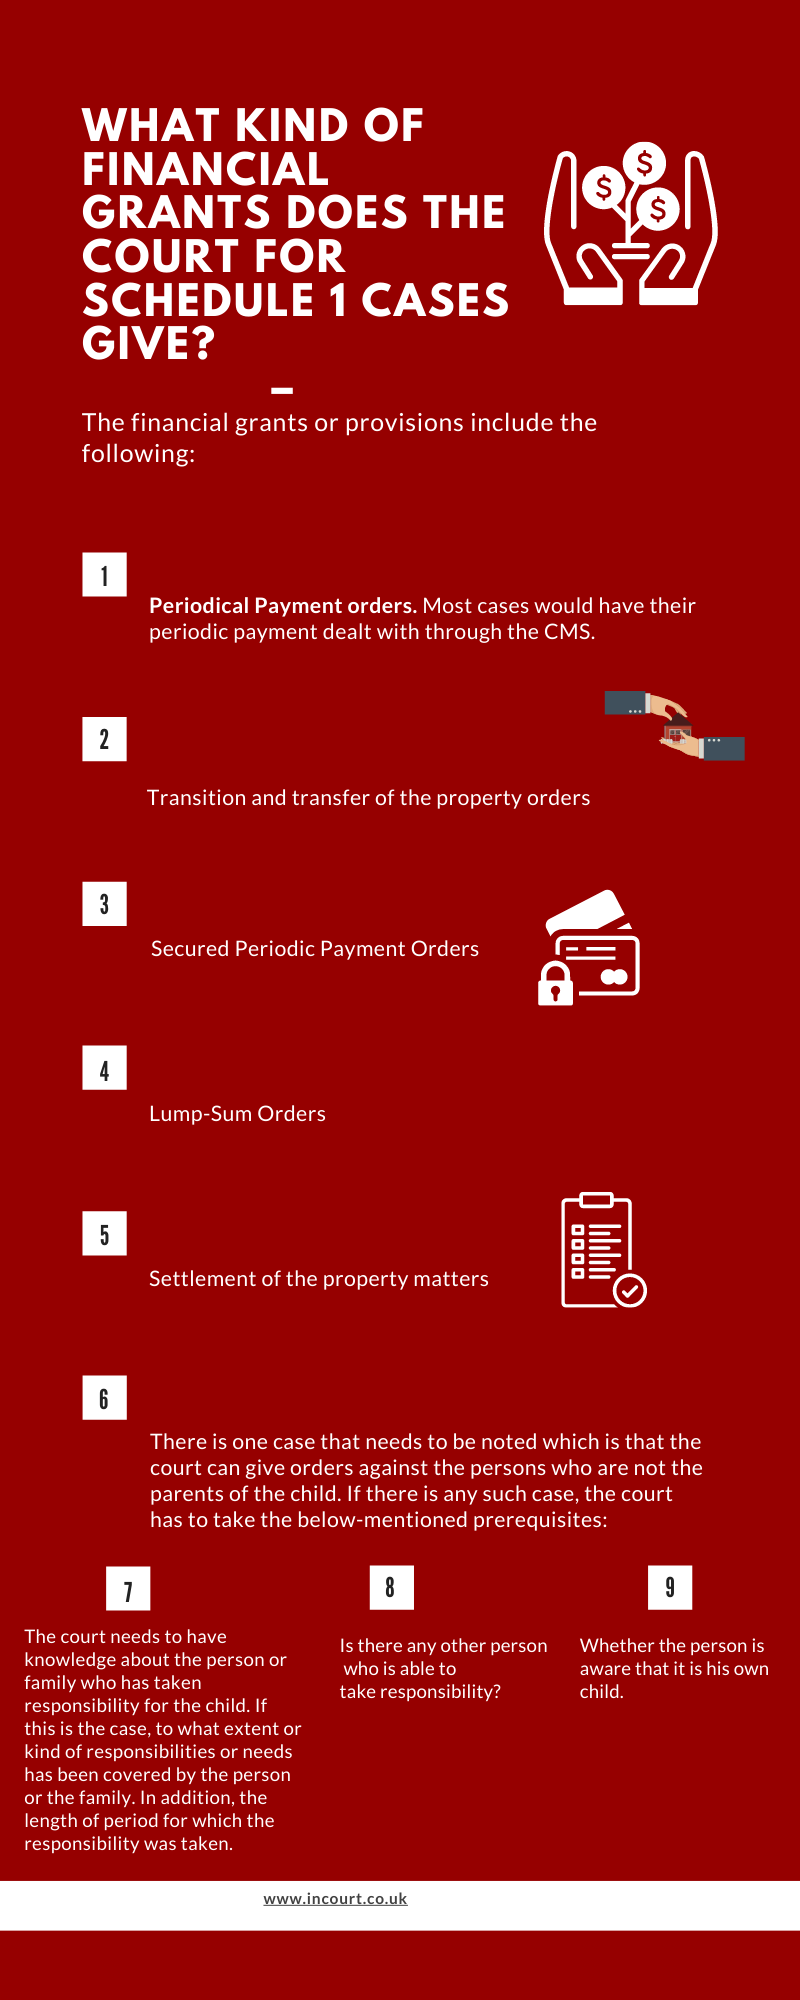 The Child Act 1989 provides for financial grants and provisions which Periodical Payment orders. Most cases would have their periodic payment dealt with through the CMS.  Transition and transfer of the property orders  Secured Periodic Payment Orders  Lump-Sum Orders and more.